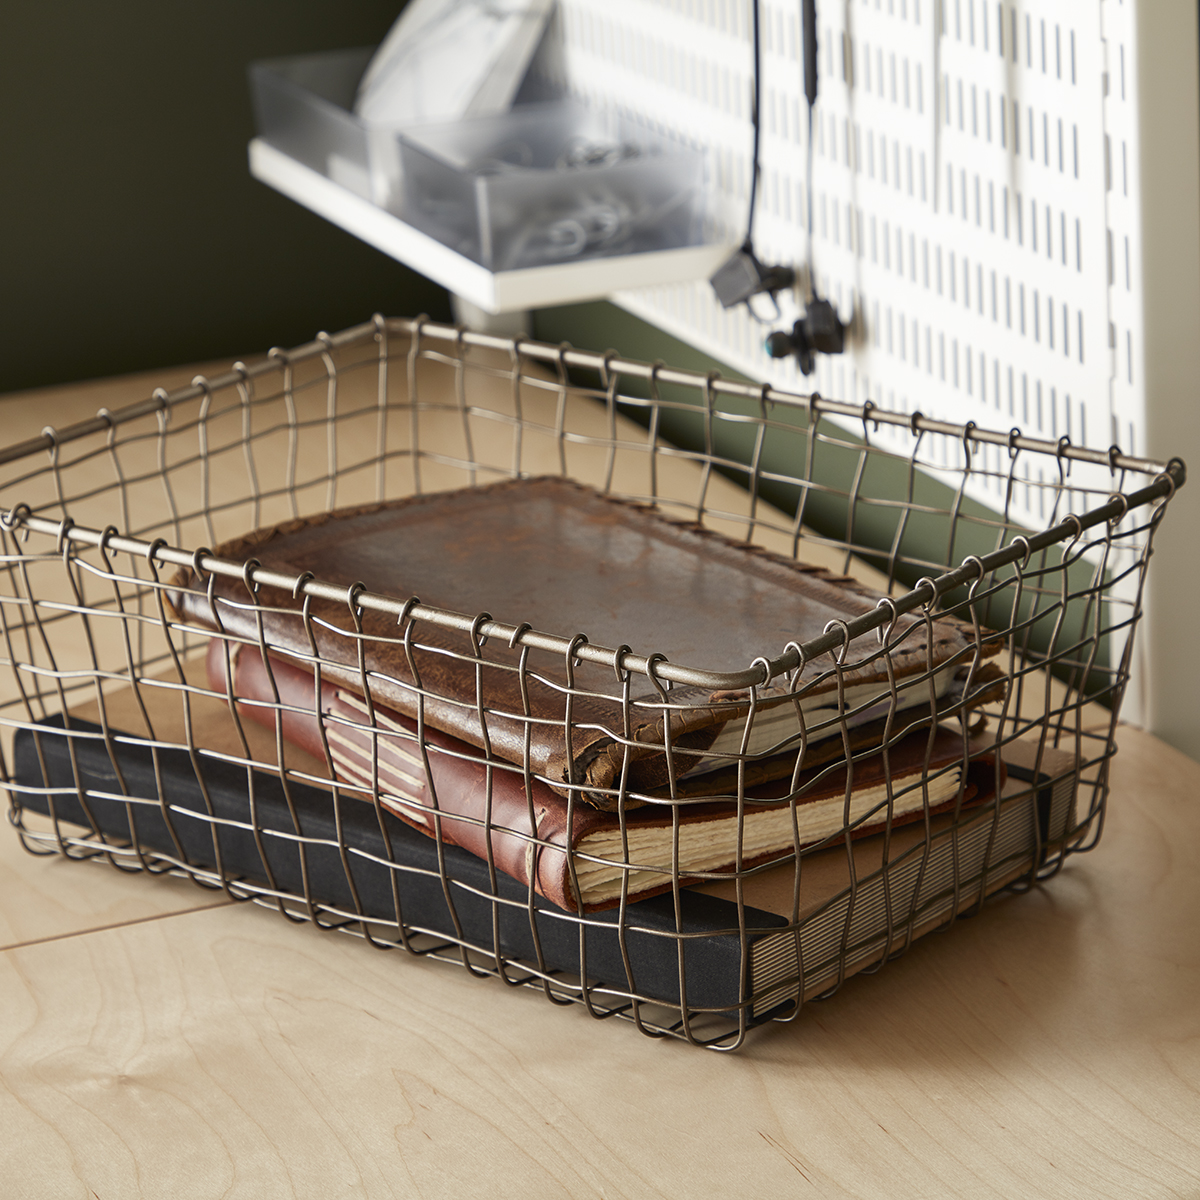 Rustic Marché Steel Wire Storage Baskets